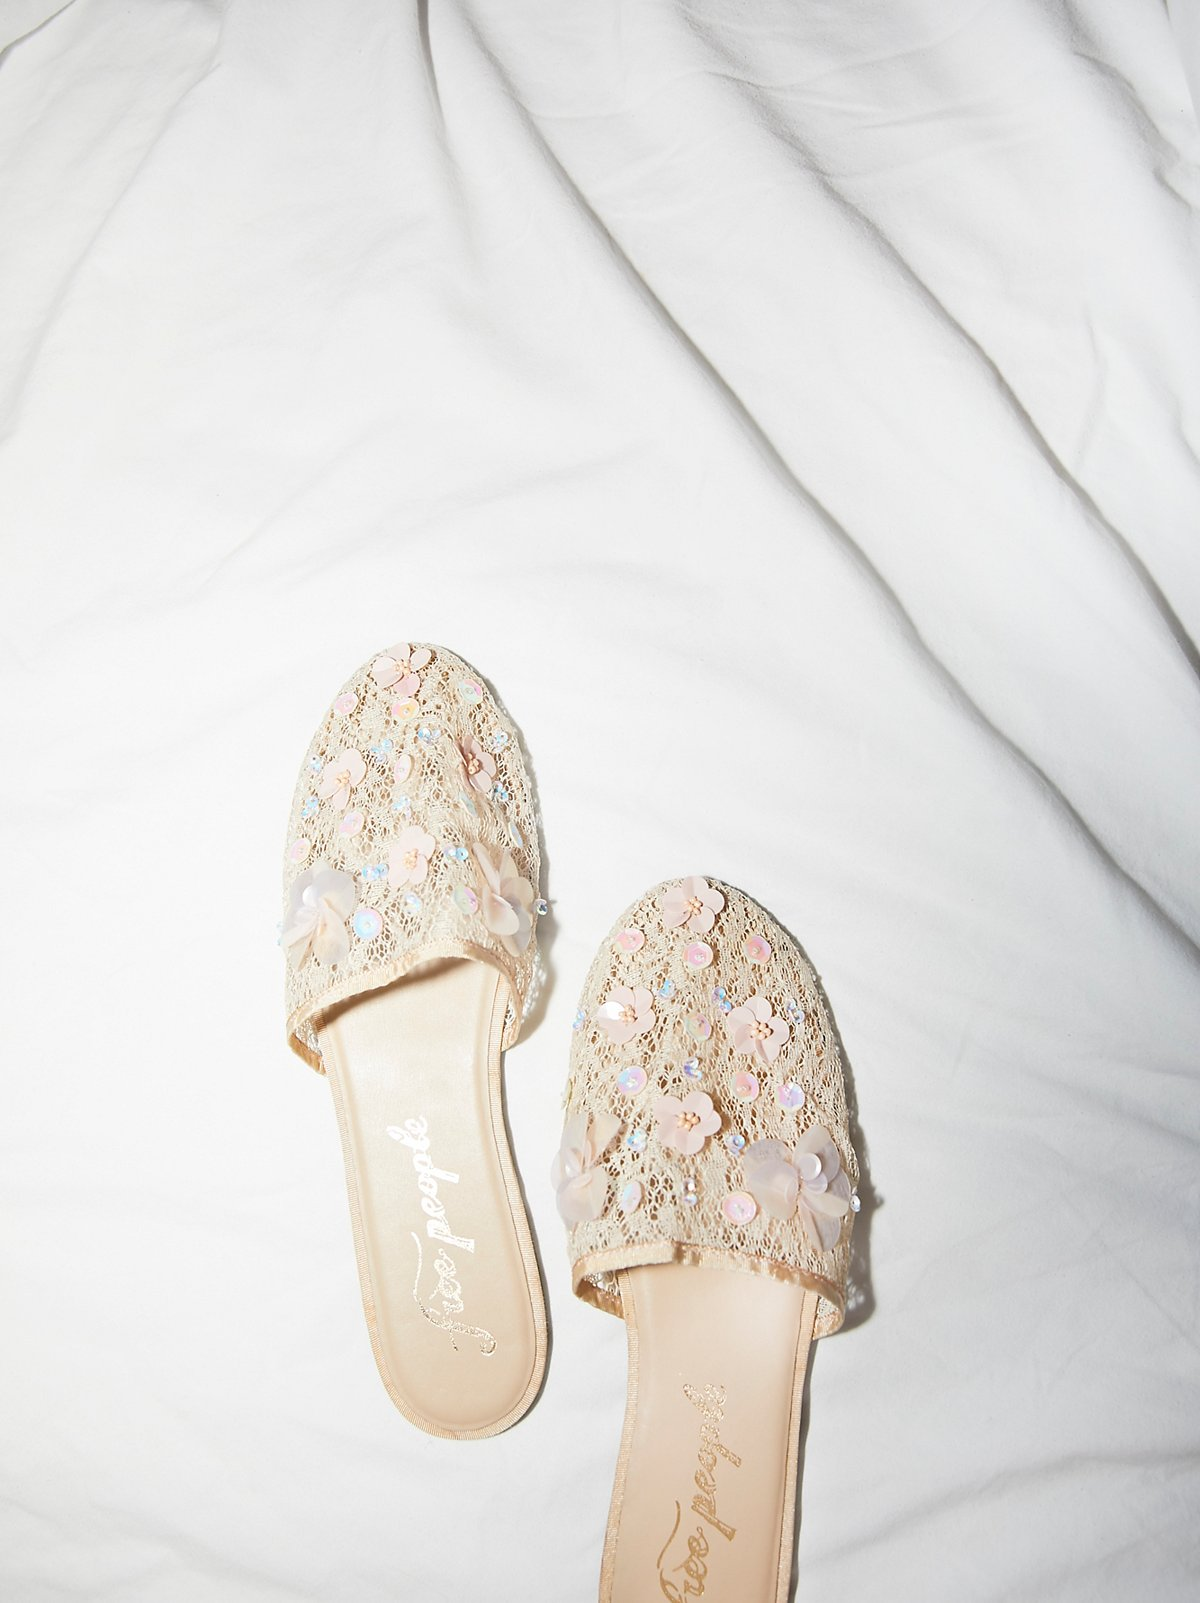 Allure Slipper